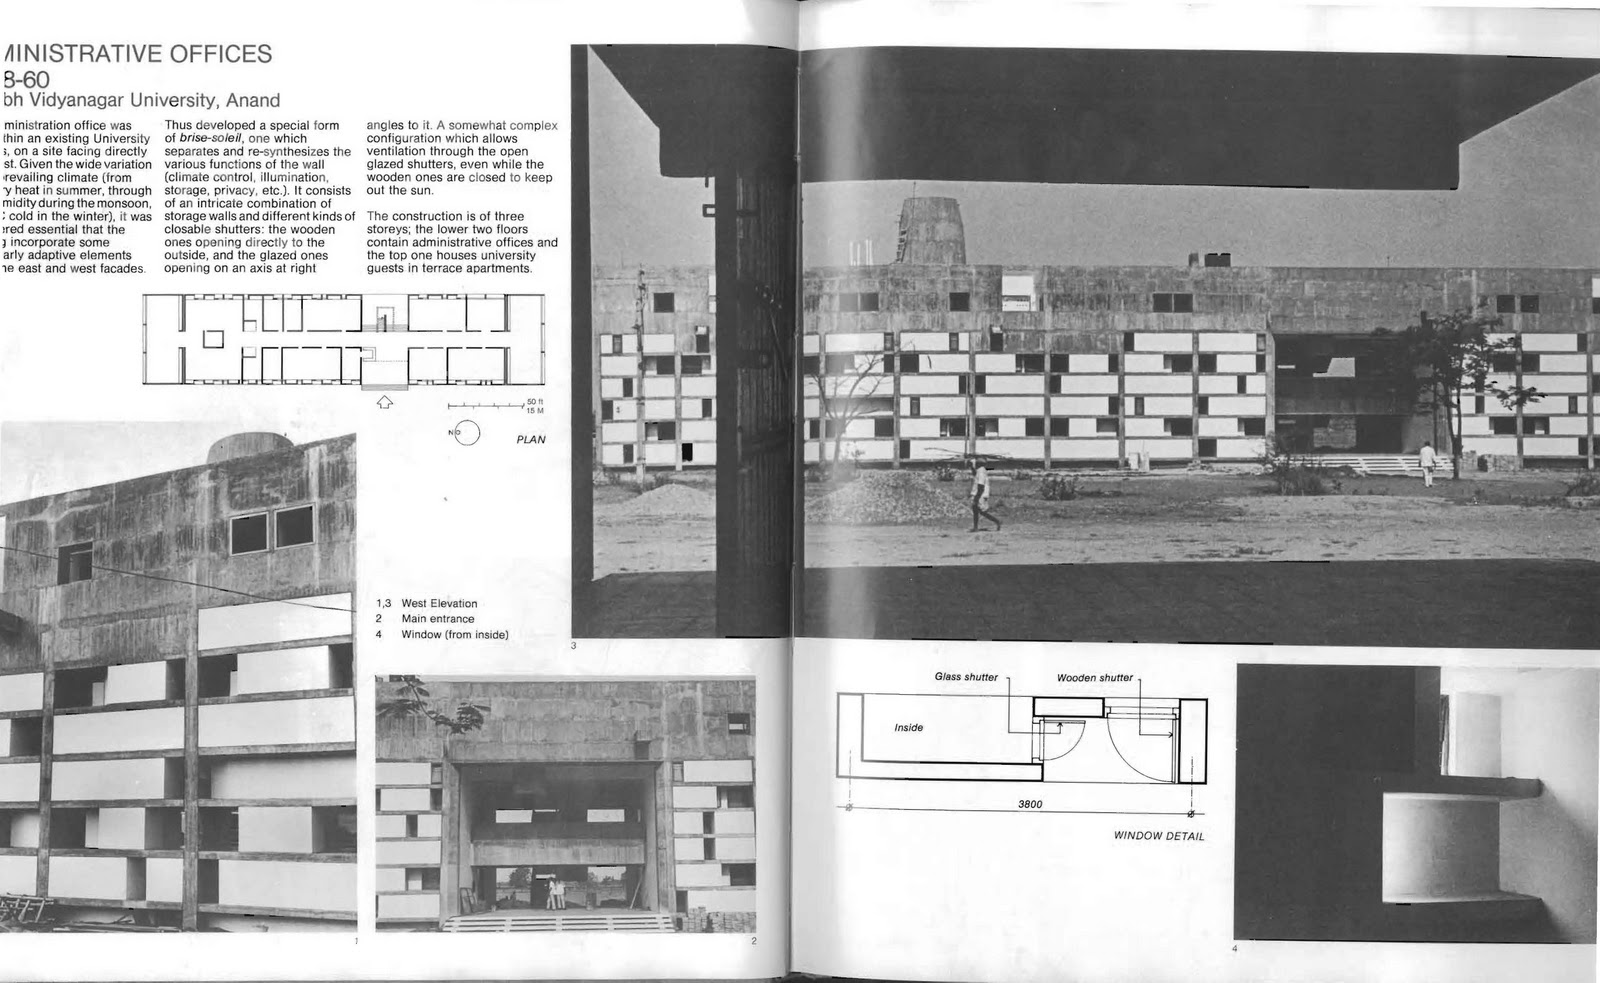 rem koolhaas thesis exodus Rem koolhaas - wikipediaearly life and careerremment koolhaas, usually abbreviated to rem koolhaas, was born on 17 november 1944 in rotterdam, netherlands, to anton koolhaasearly life and career exodus, or the voluntary prisoners of architecture.